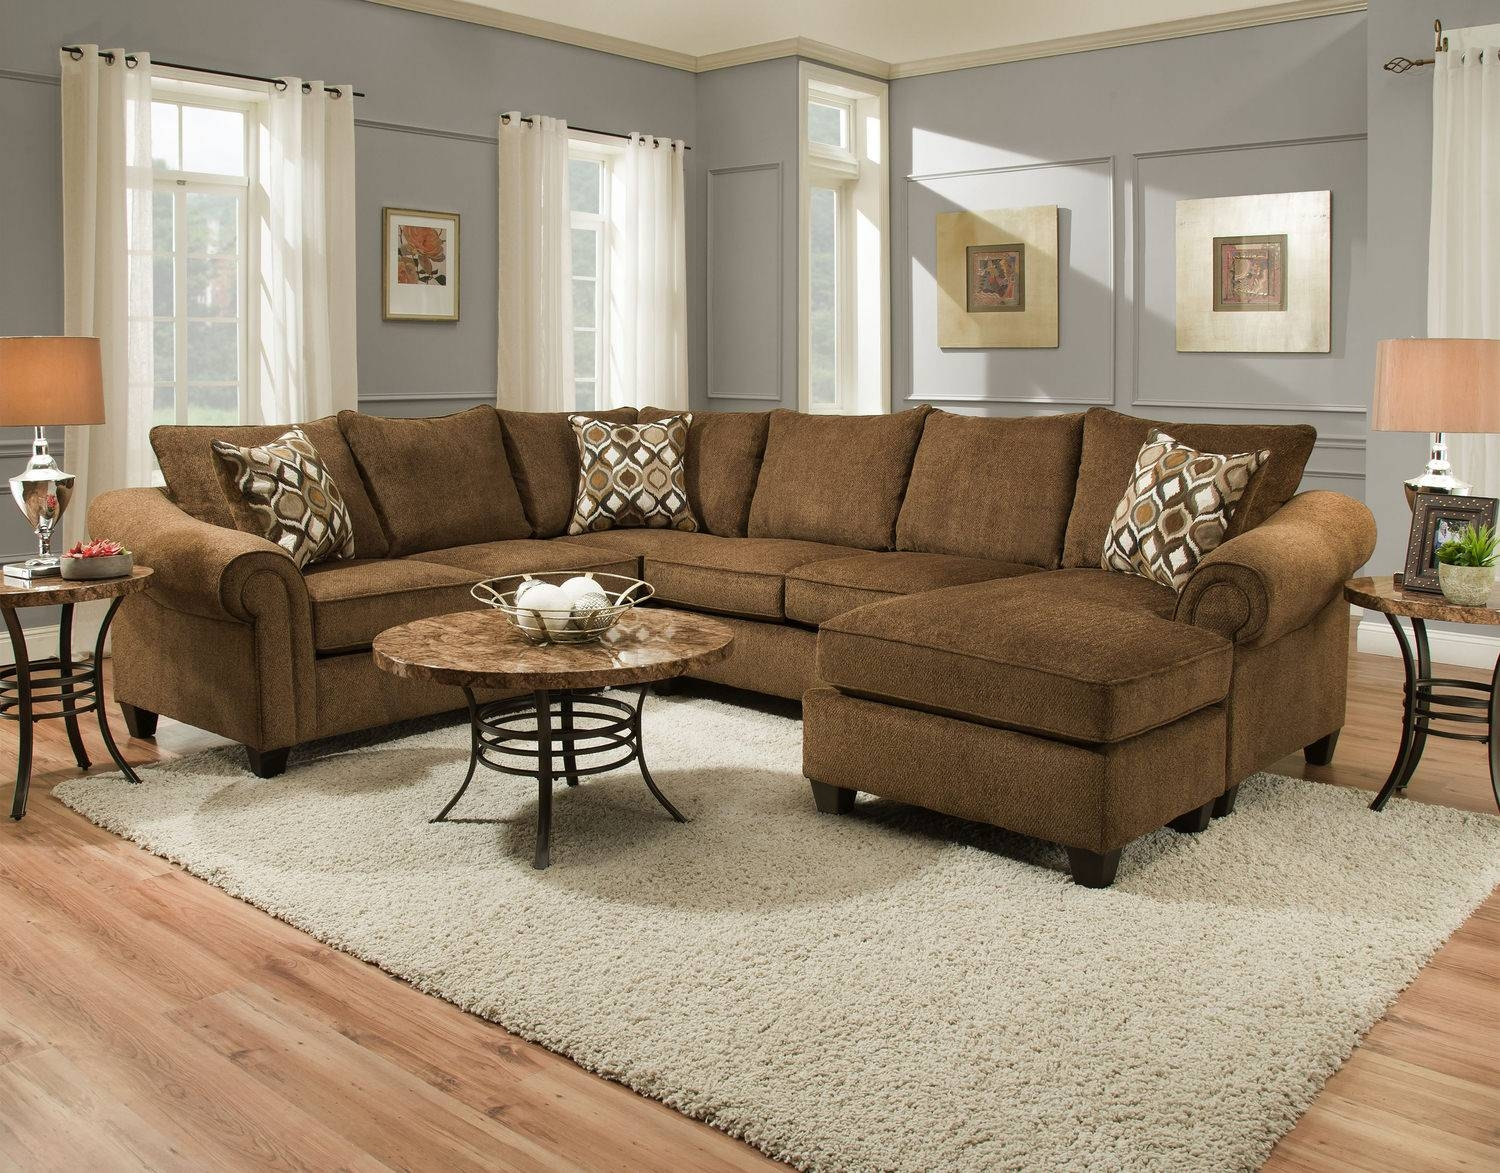 Sectional Sofas – Living Room Seating – Hom Furniture with regard to 10 Piece Sectional Sofa (Image 23 of 30)